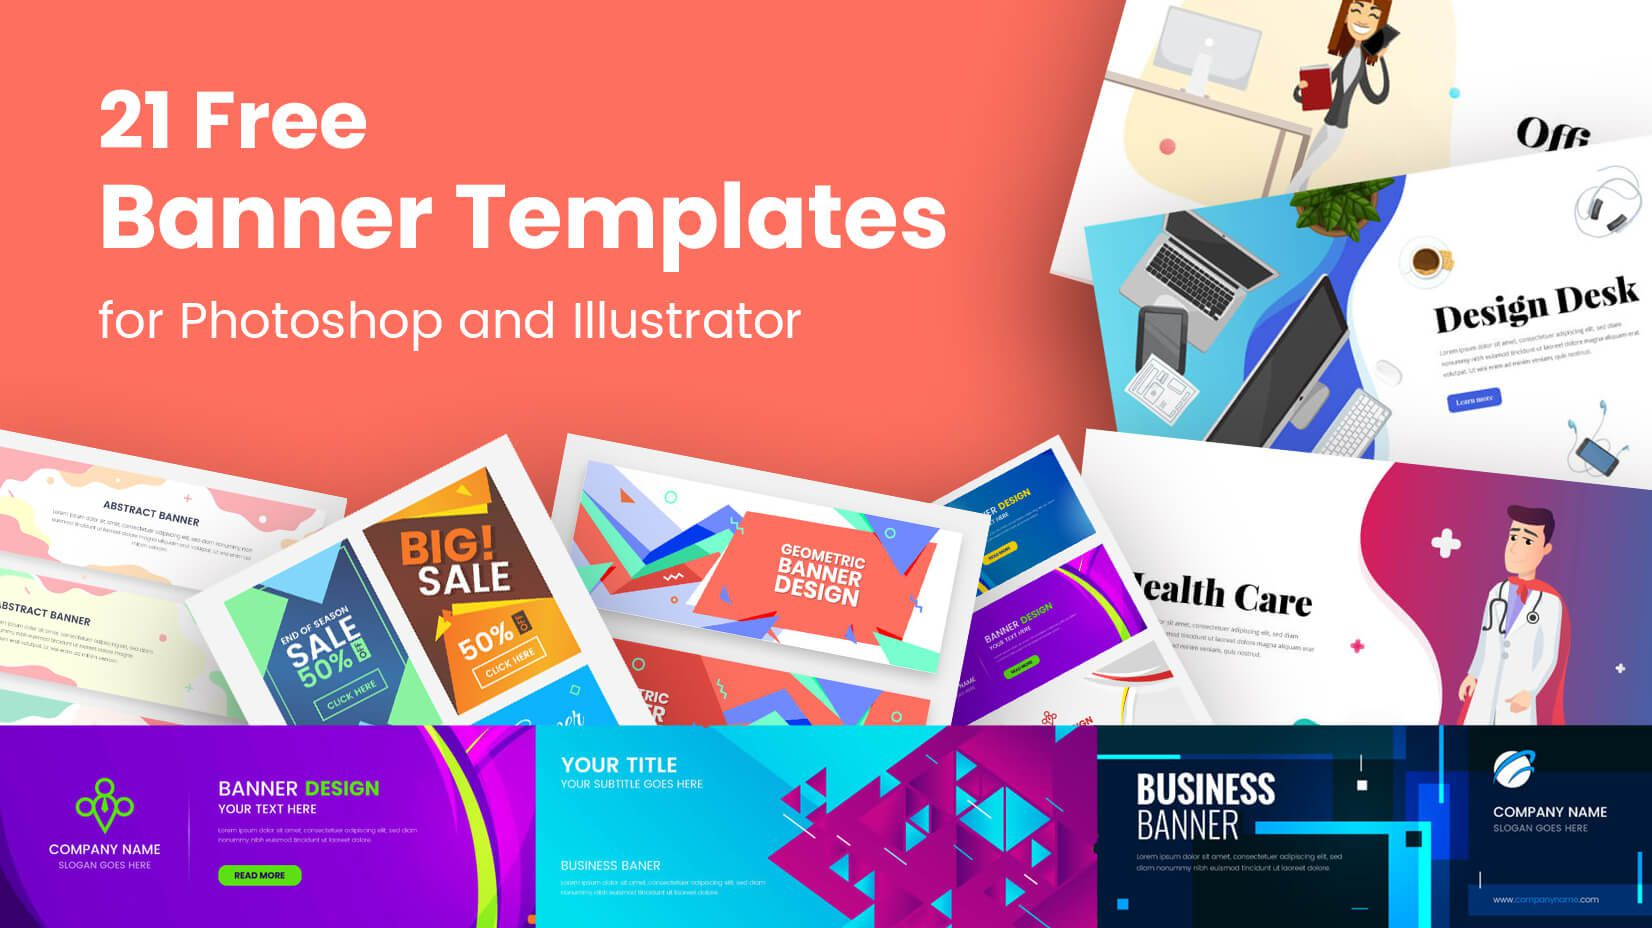 001 Stirring Free Graphic Design Template Example  Templates For Flyer Powerpoint Download T-shirtFull